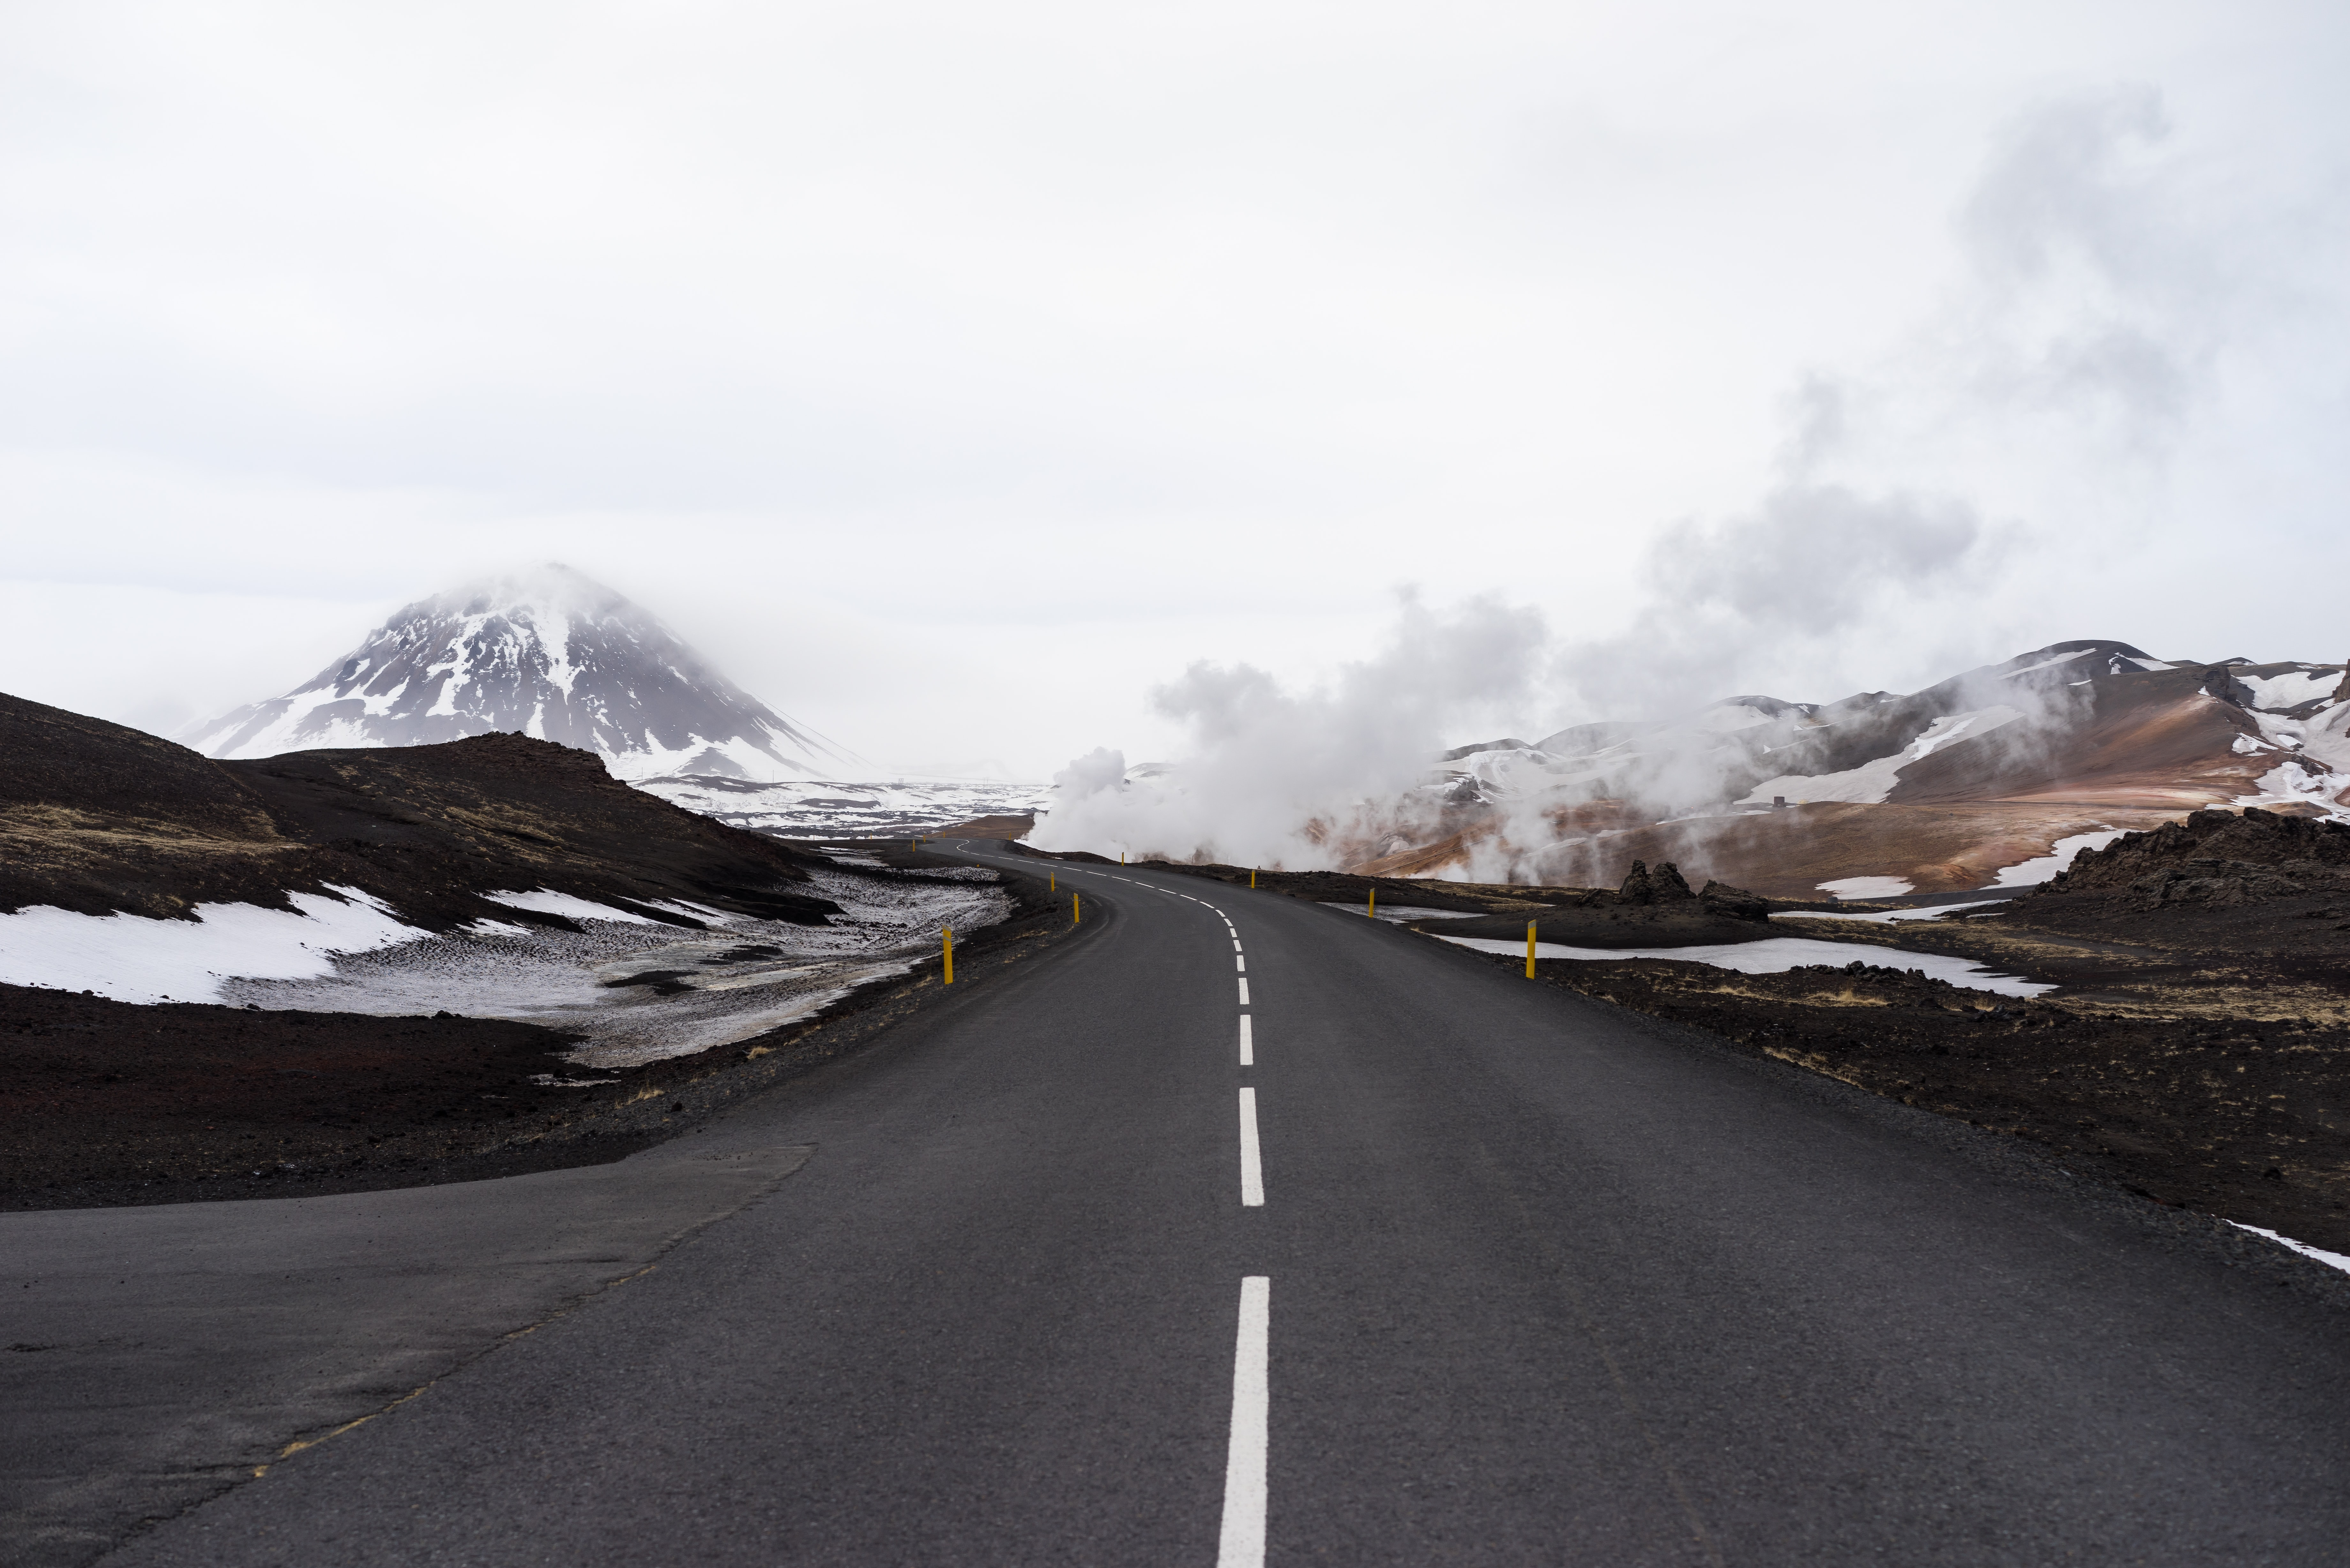 An asphalt road in the mountains with steam rising up on the roadside